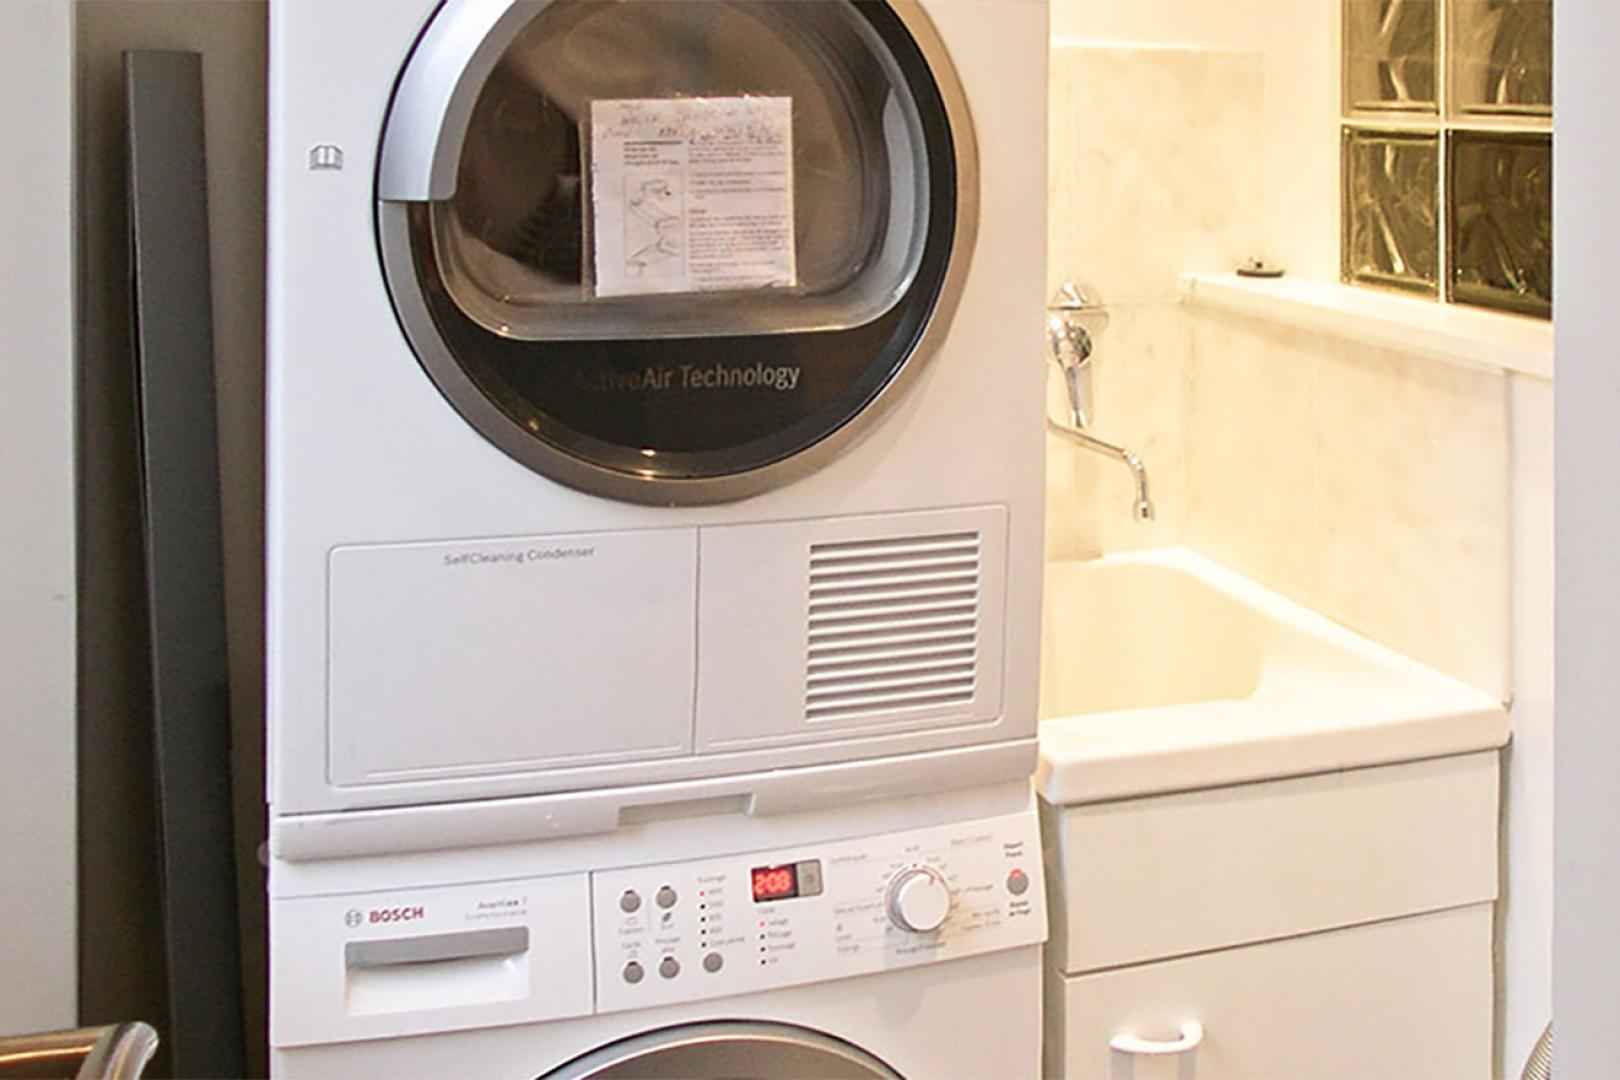 For your convenience, there is a laundry room with washer, dryer and sink.